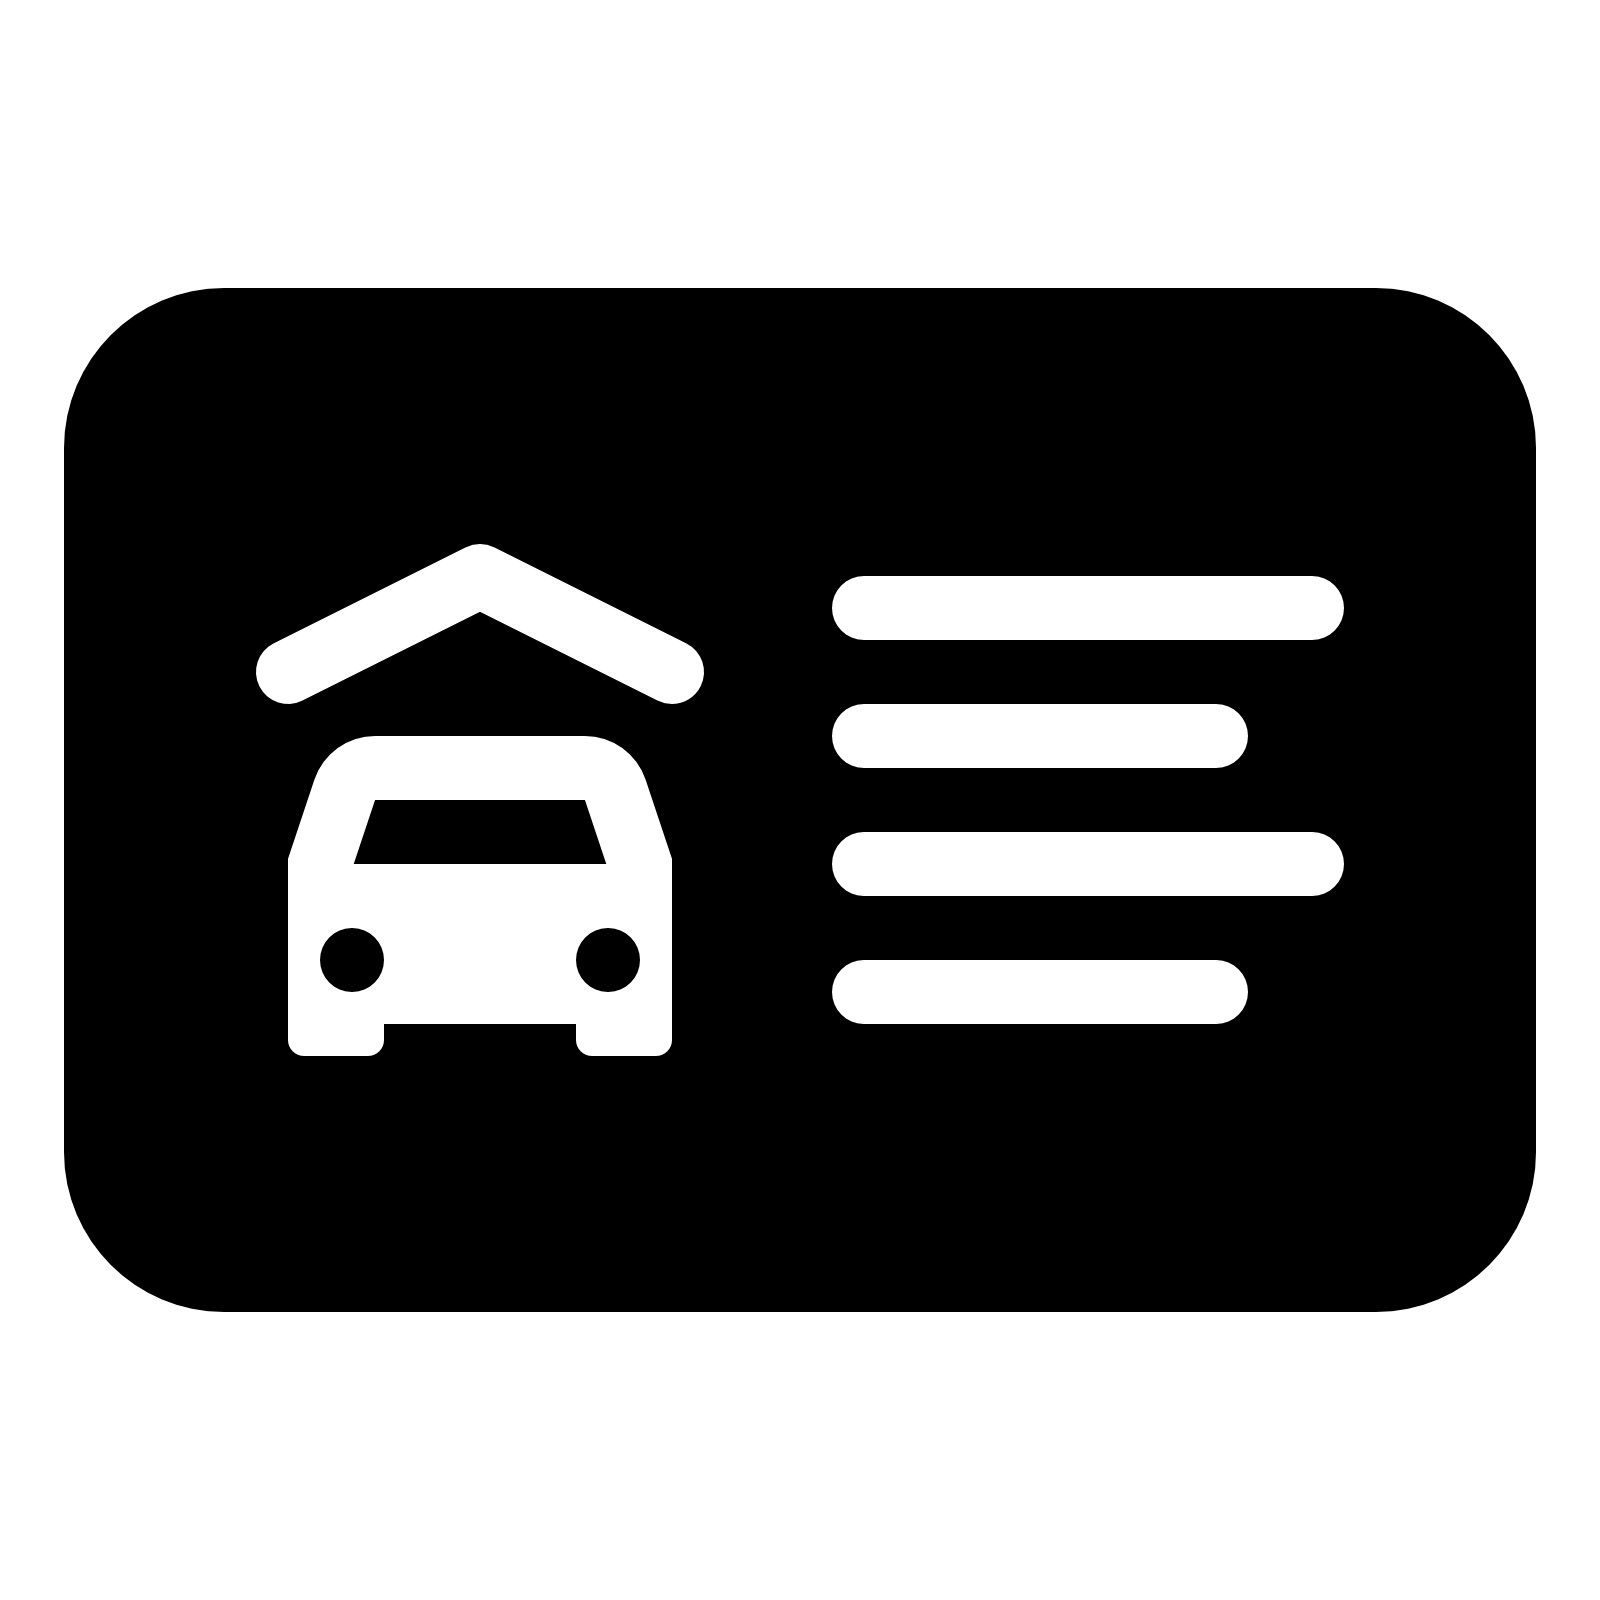 Card clipart car insurance Icon Insurance translate at Card